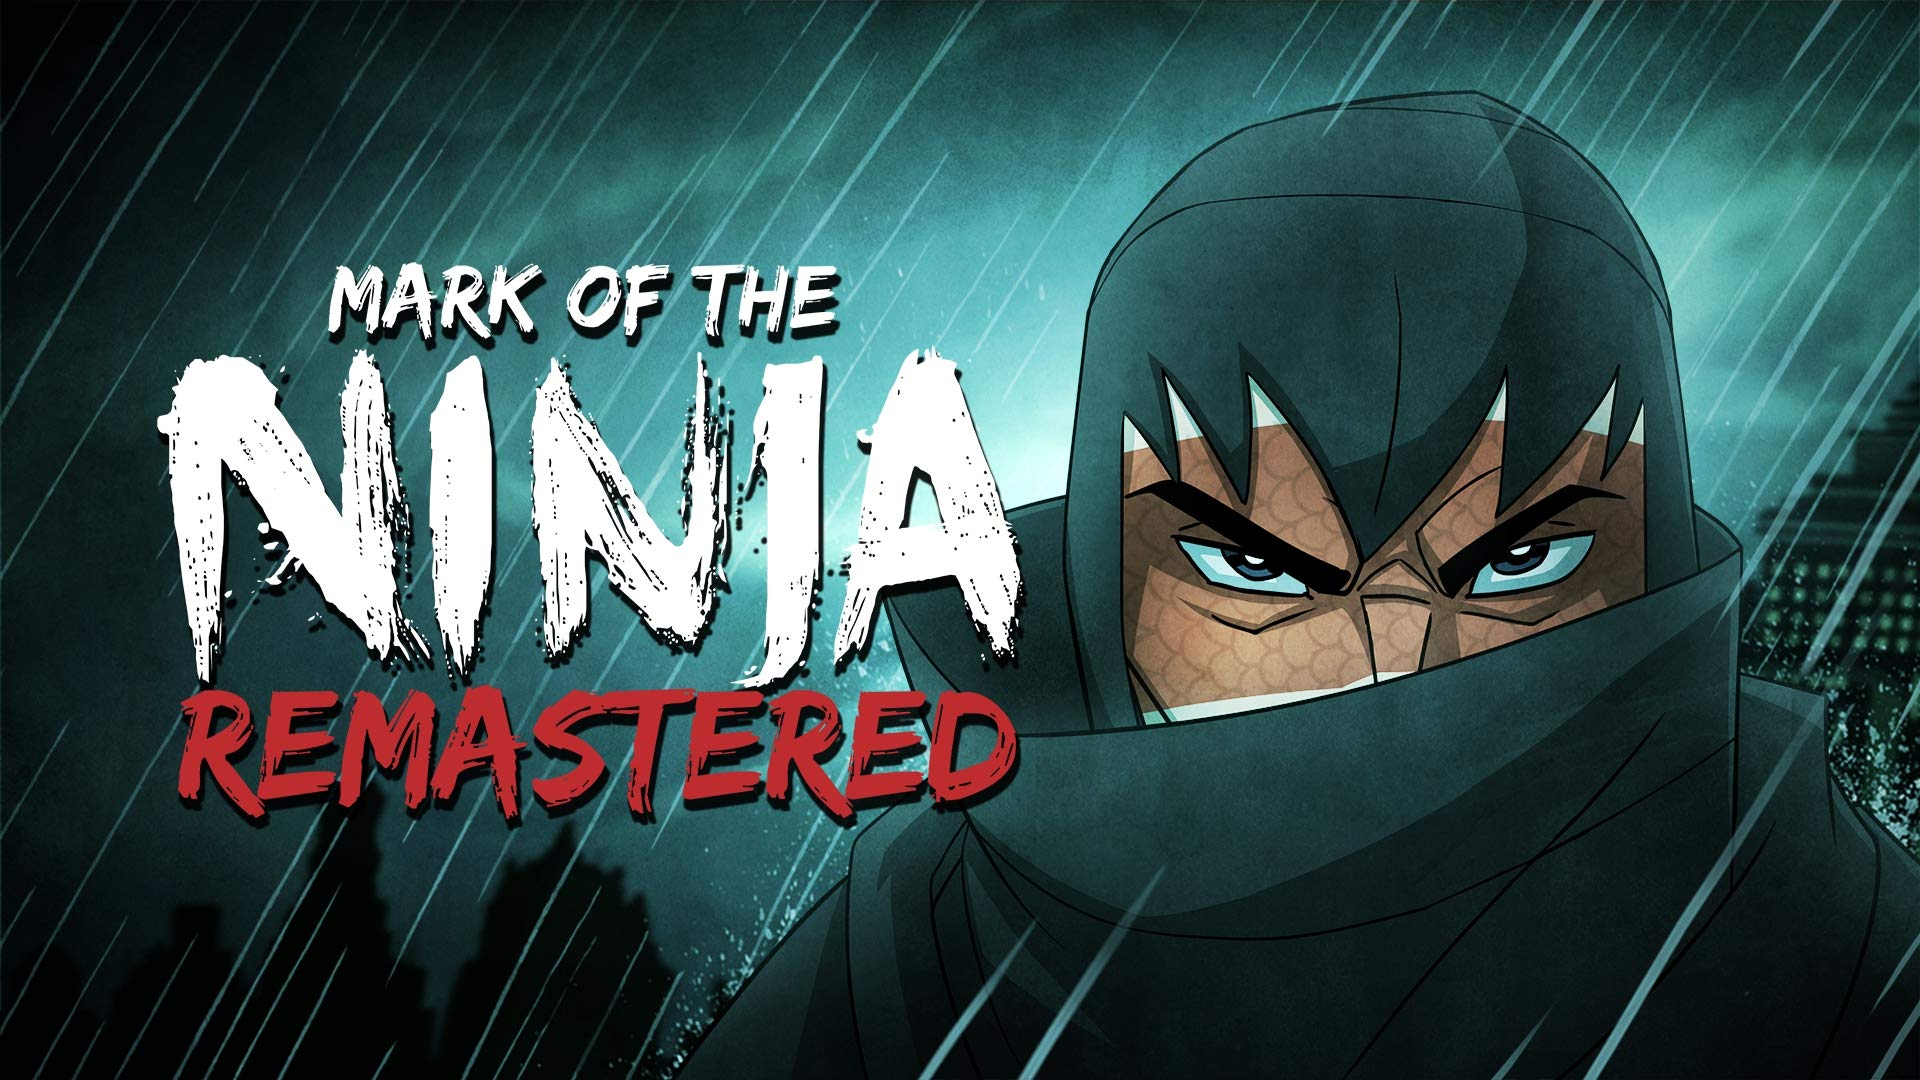 Amazon.com: Mark of the Ninja: Remastered - Nintendo Switch ...